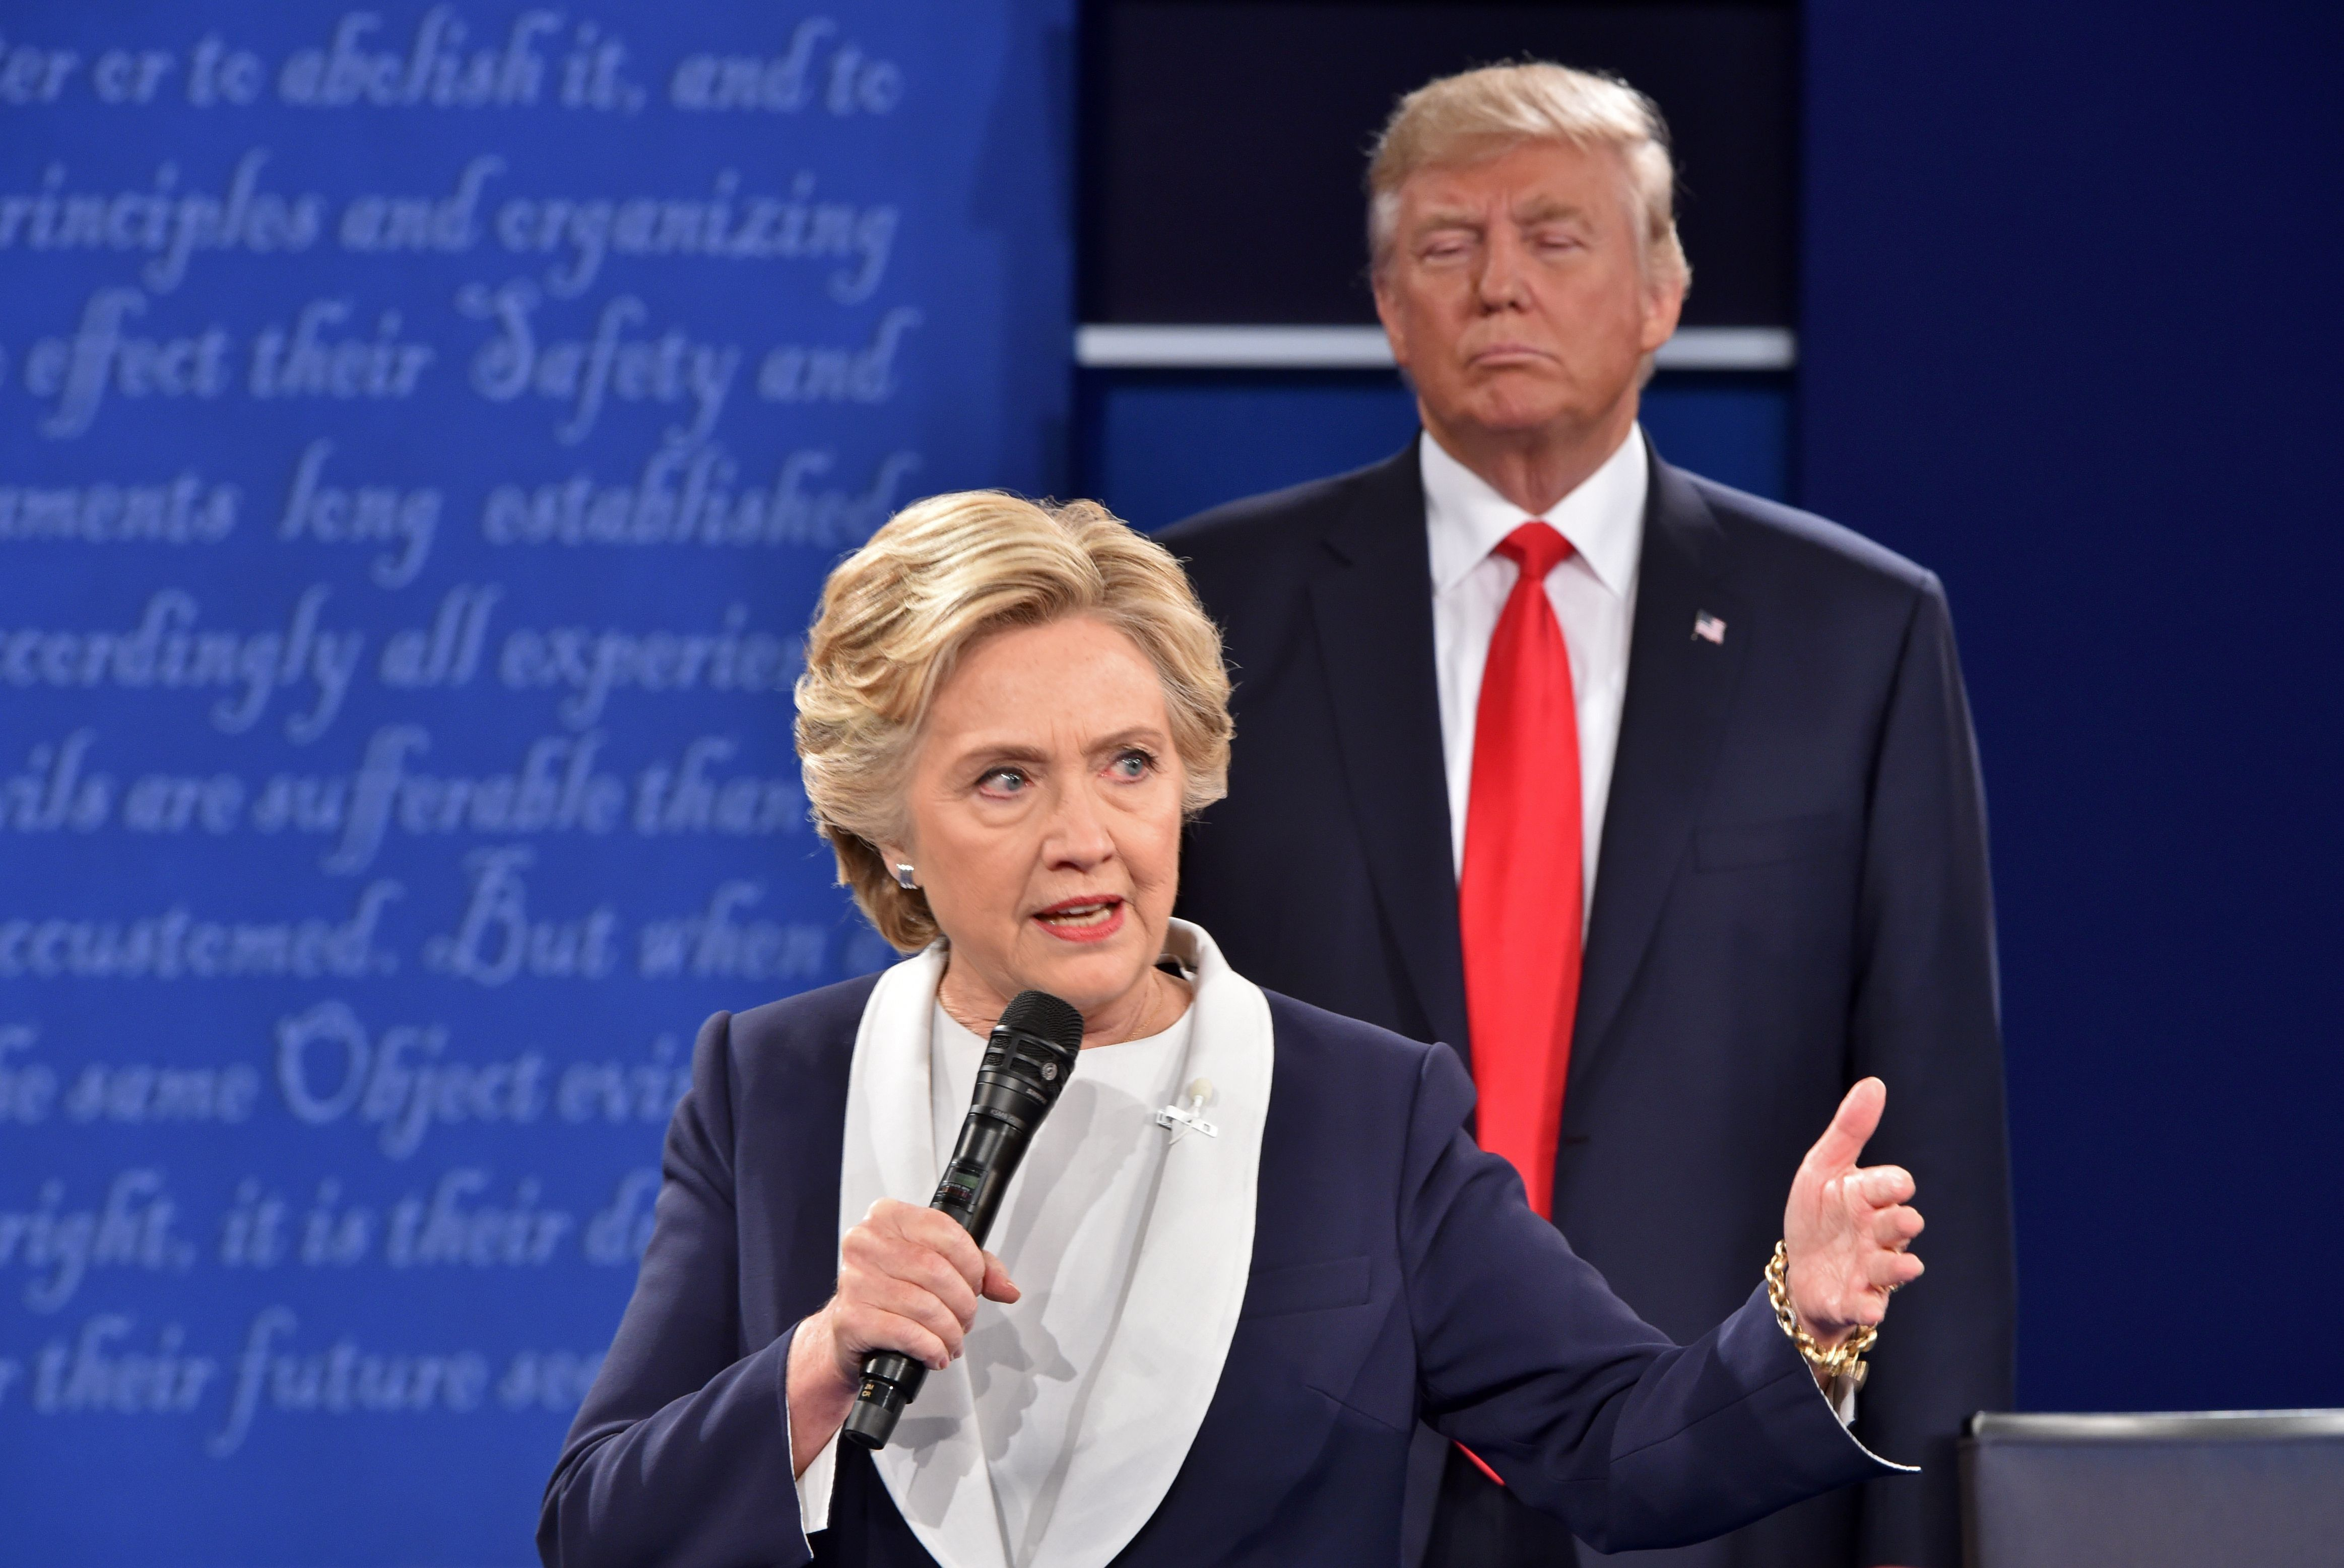 Trump observes Clinton during the second presidential debate.